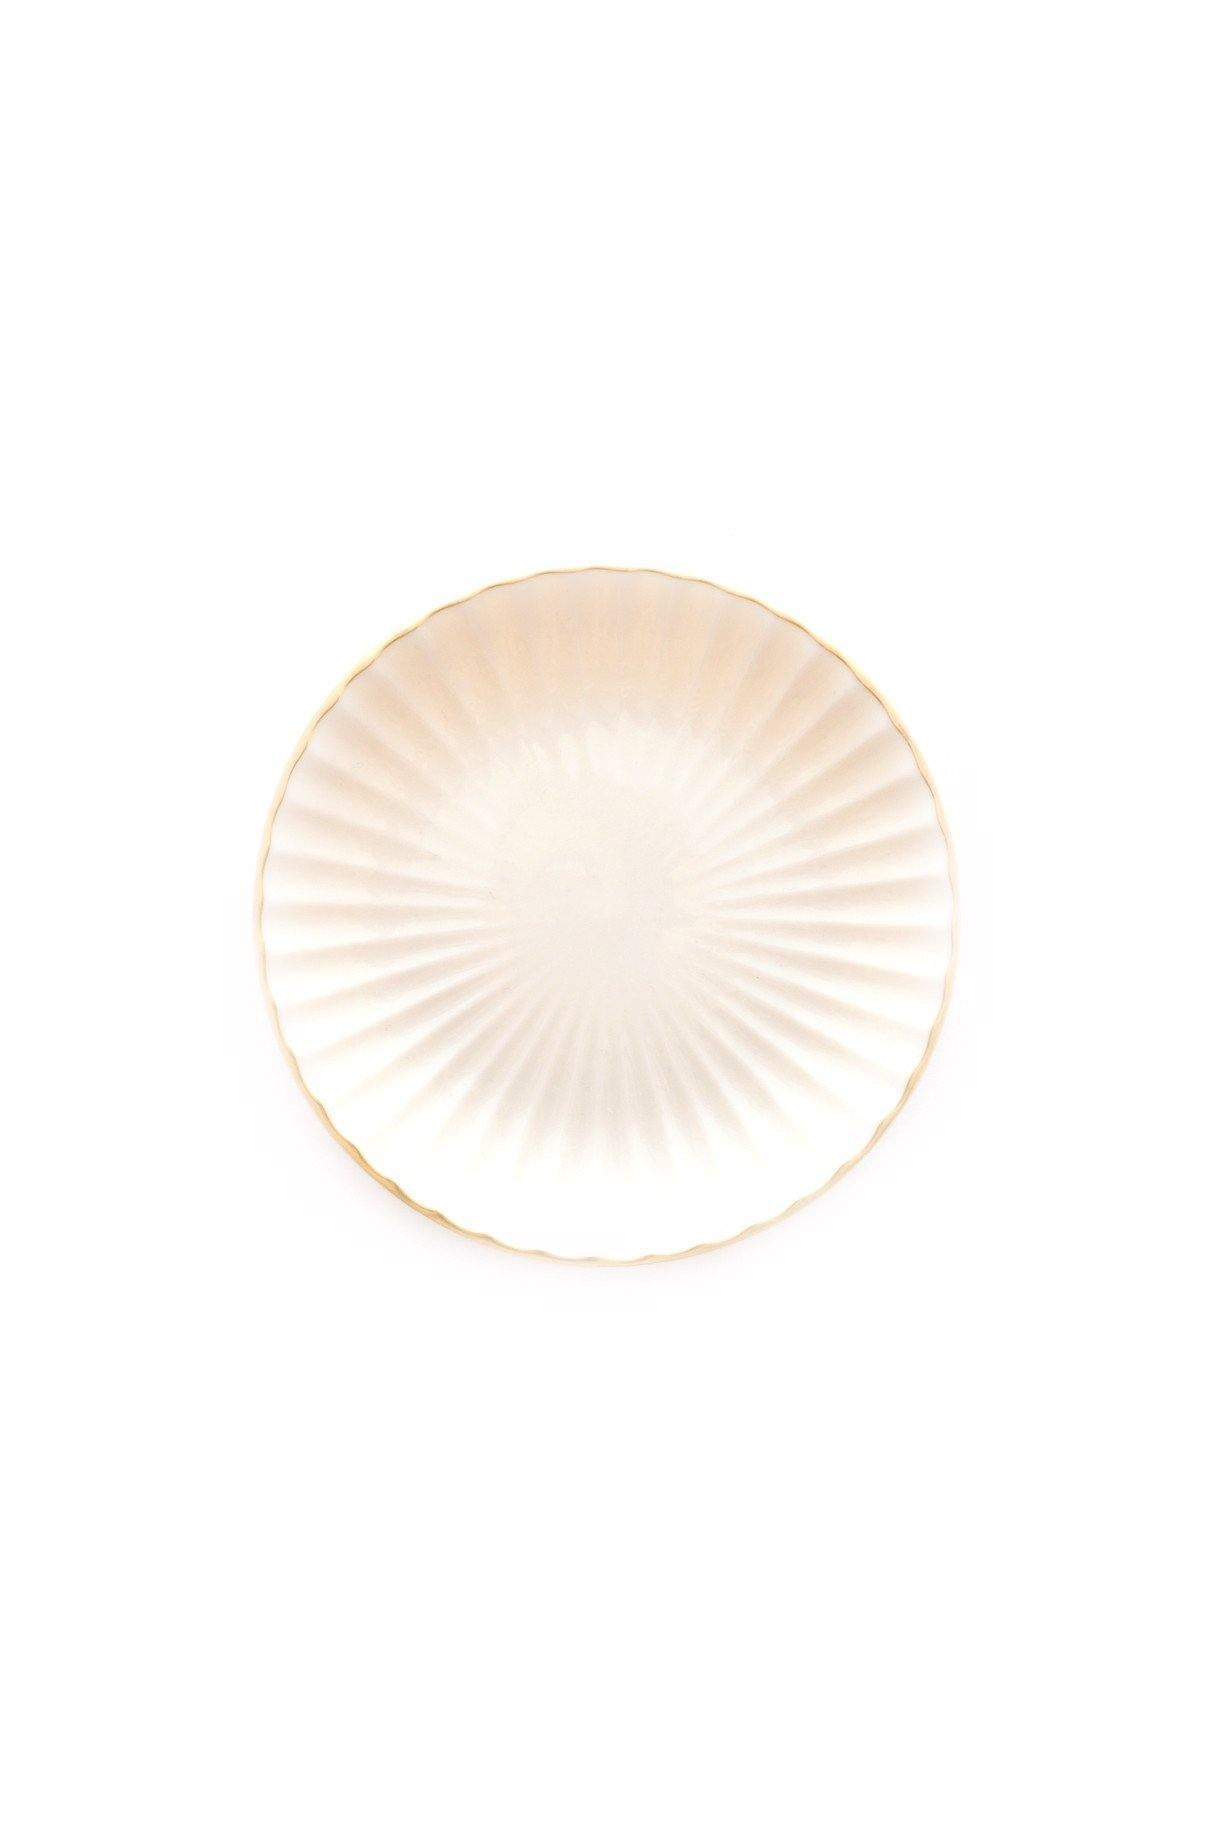 Fanned Jewelry Dish